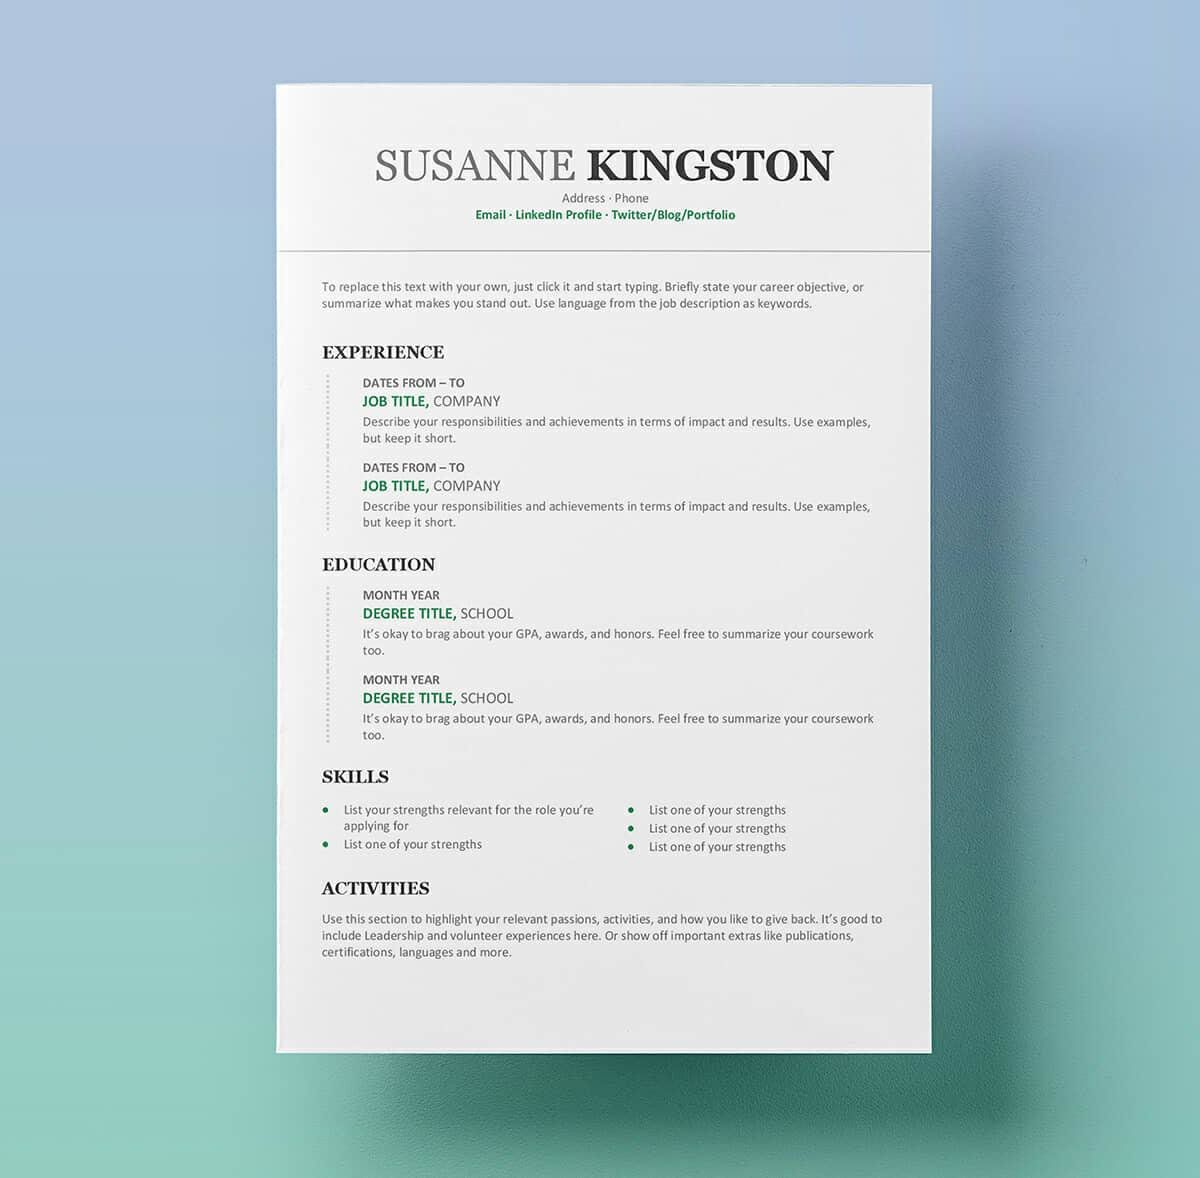 004 Unique Professional Resume Template Word Picture  Microsoft Download Free 2010 2019Full